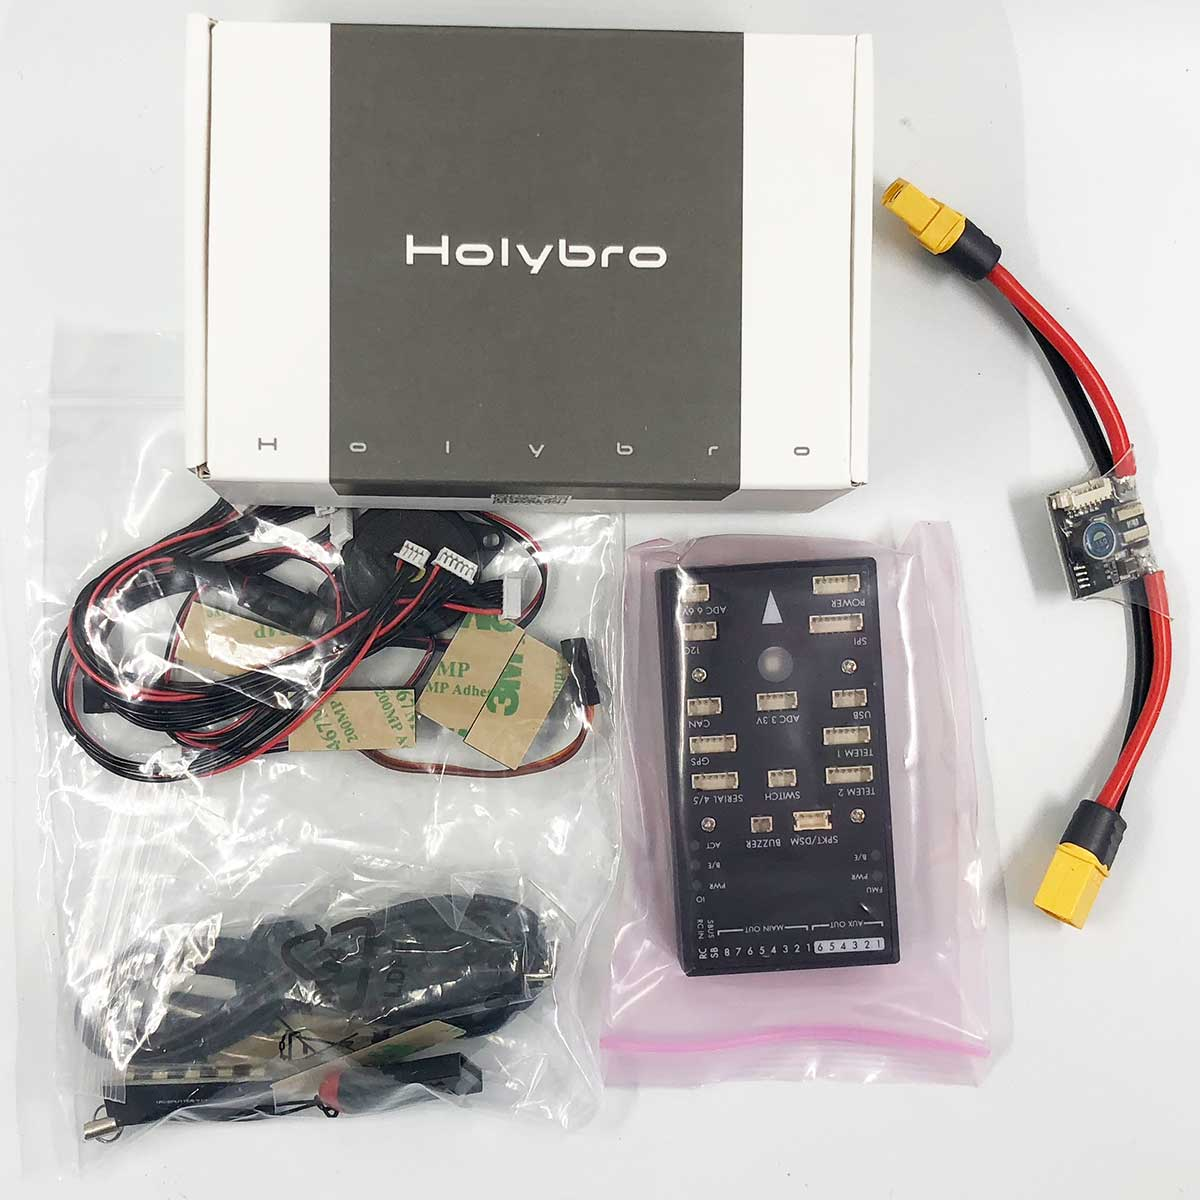 Holybro Pix32 Pixhawk with 10S Power Module